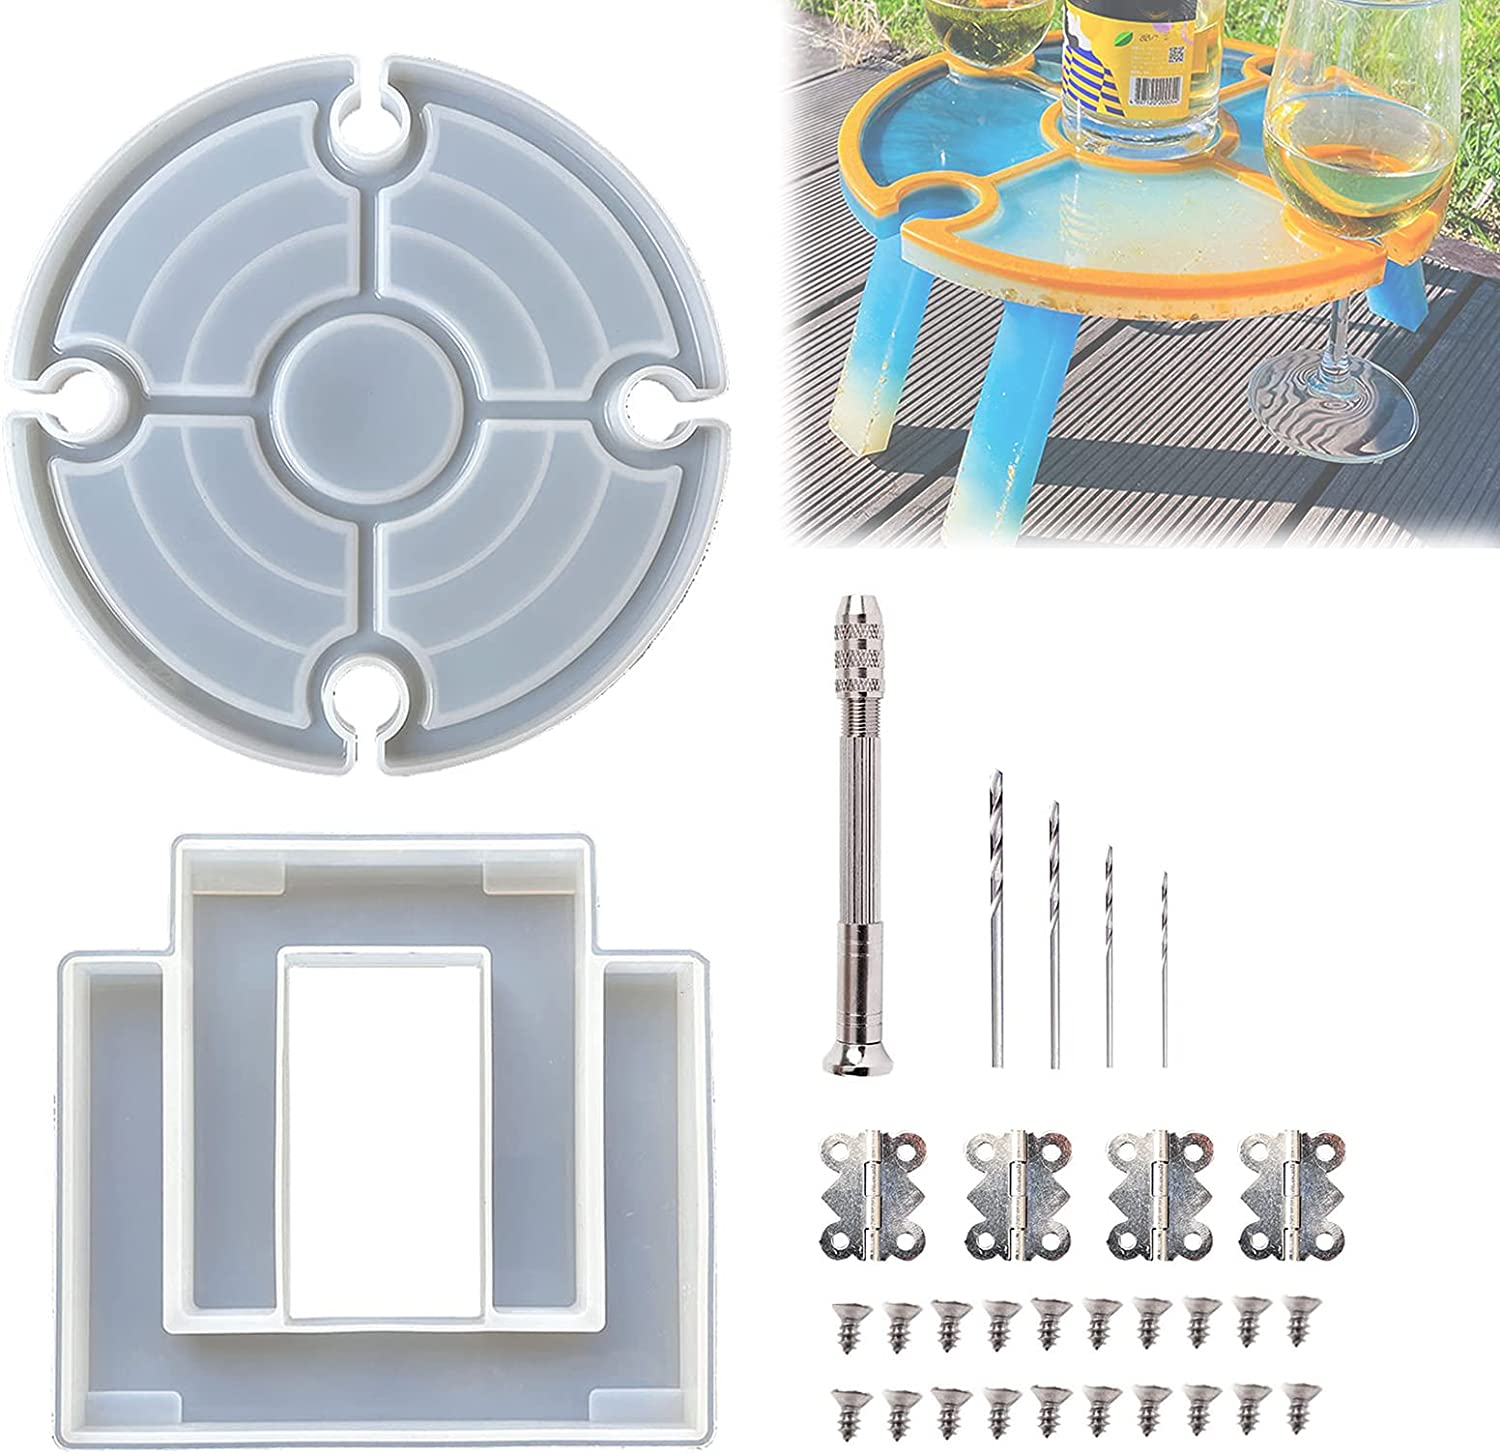 LASULEN Dinner Plate Silicone Mold, Folding Picnic Table Set, Epoxy Dinner Plate Mould, Epoxy Resin Table Molds Large Reusable, Divided Grid + Wine Glass Grid, with Hinges Screws Manual Hole Punch